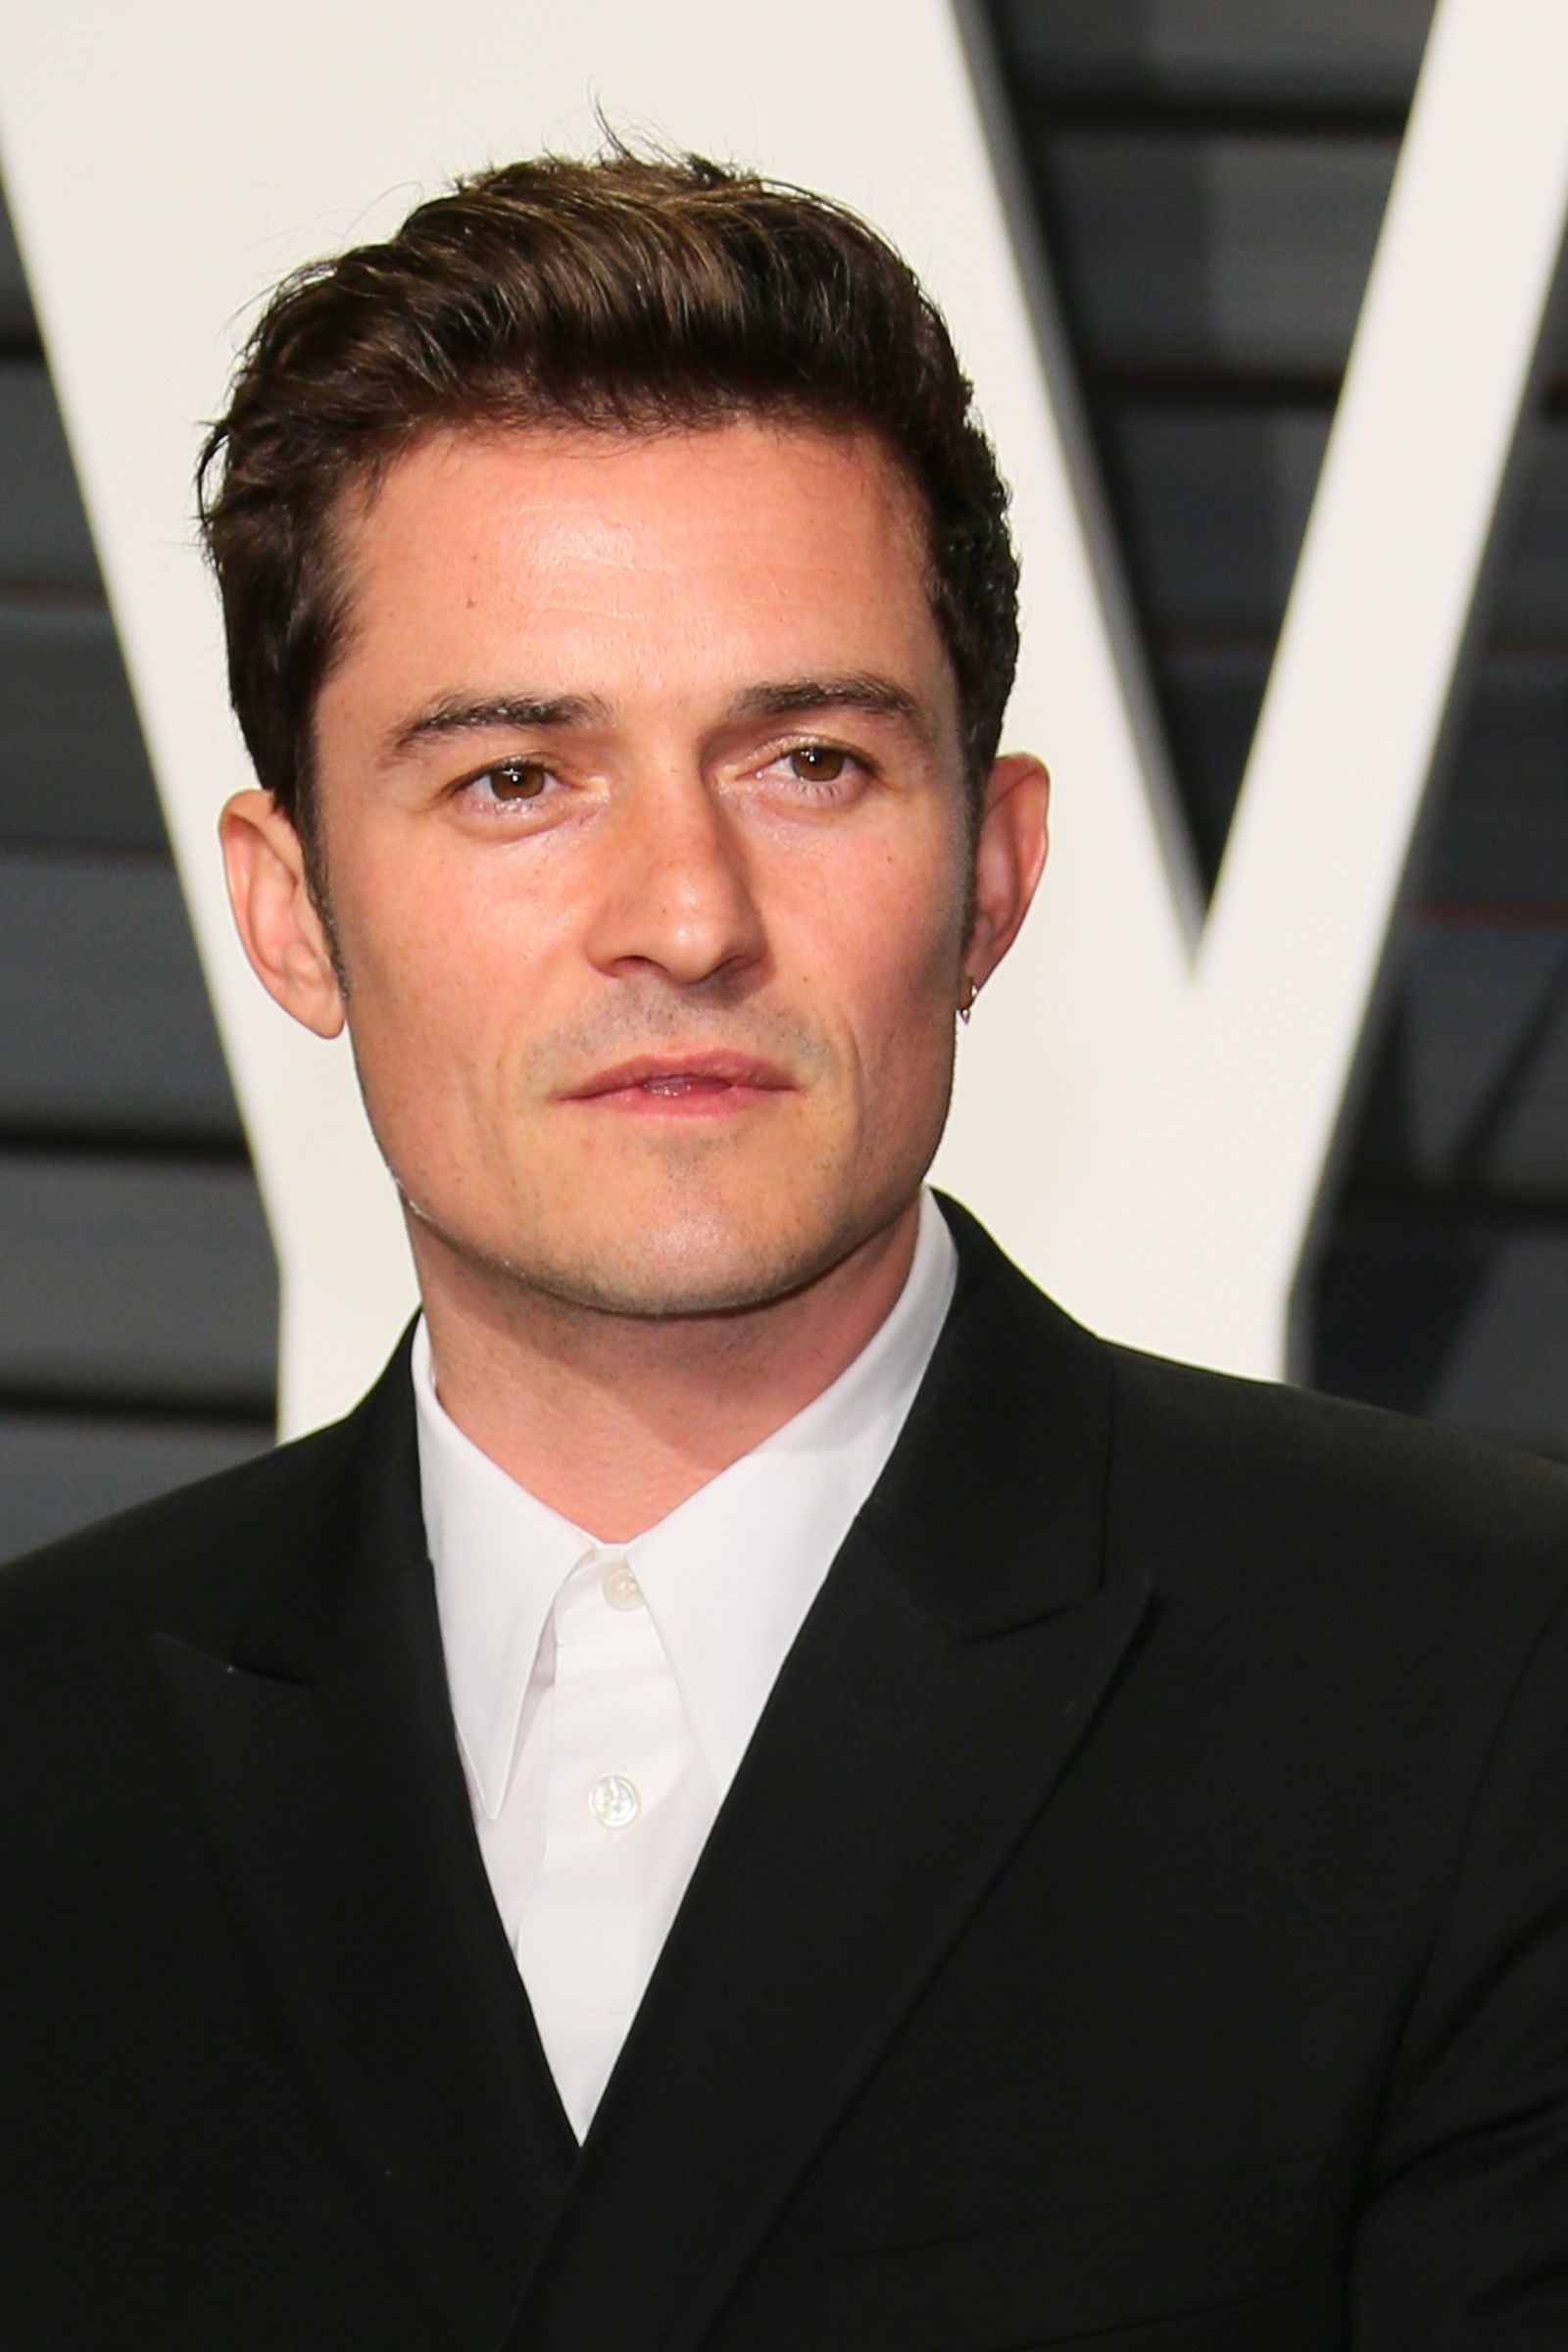 Orlando Bloom wants to date Selena Gomez, called her the ... Orlando Bloom